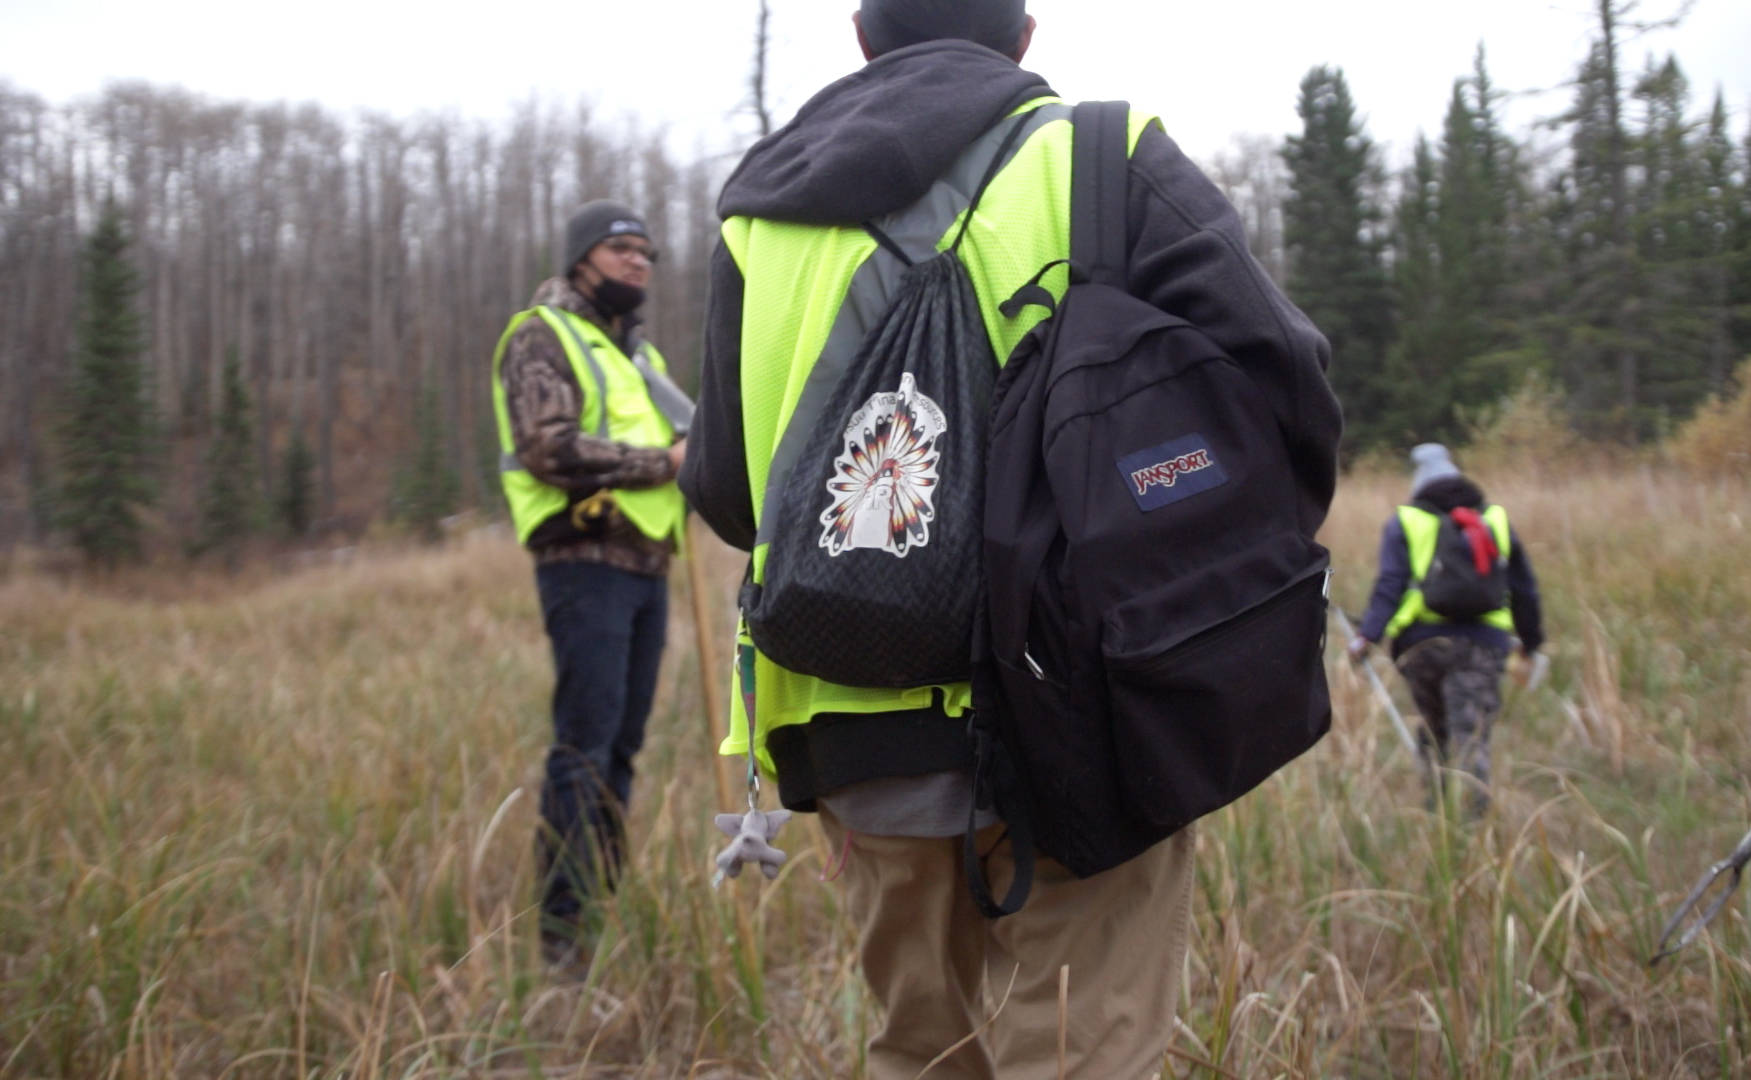 Focused on creating employability skills and meaningful employment, the BEAHR program has evolved with the growing needs of the environmental sector, seeing a nearly 80 per cent employment rate for 3,700 graduates across Canada and in over 230 rural communities.